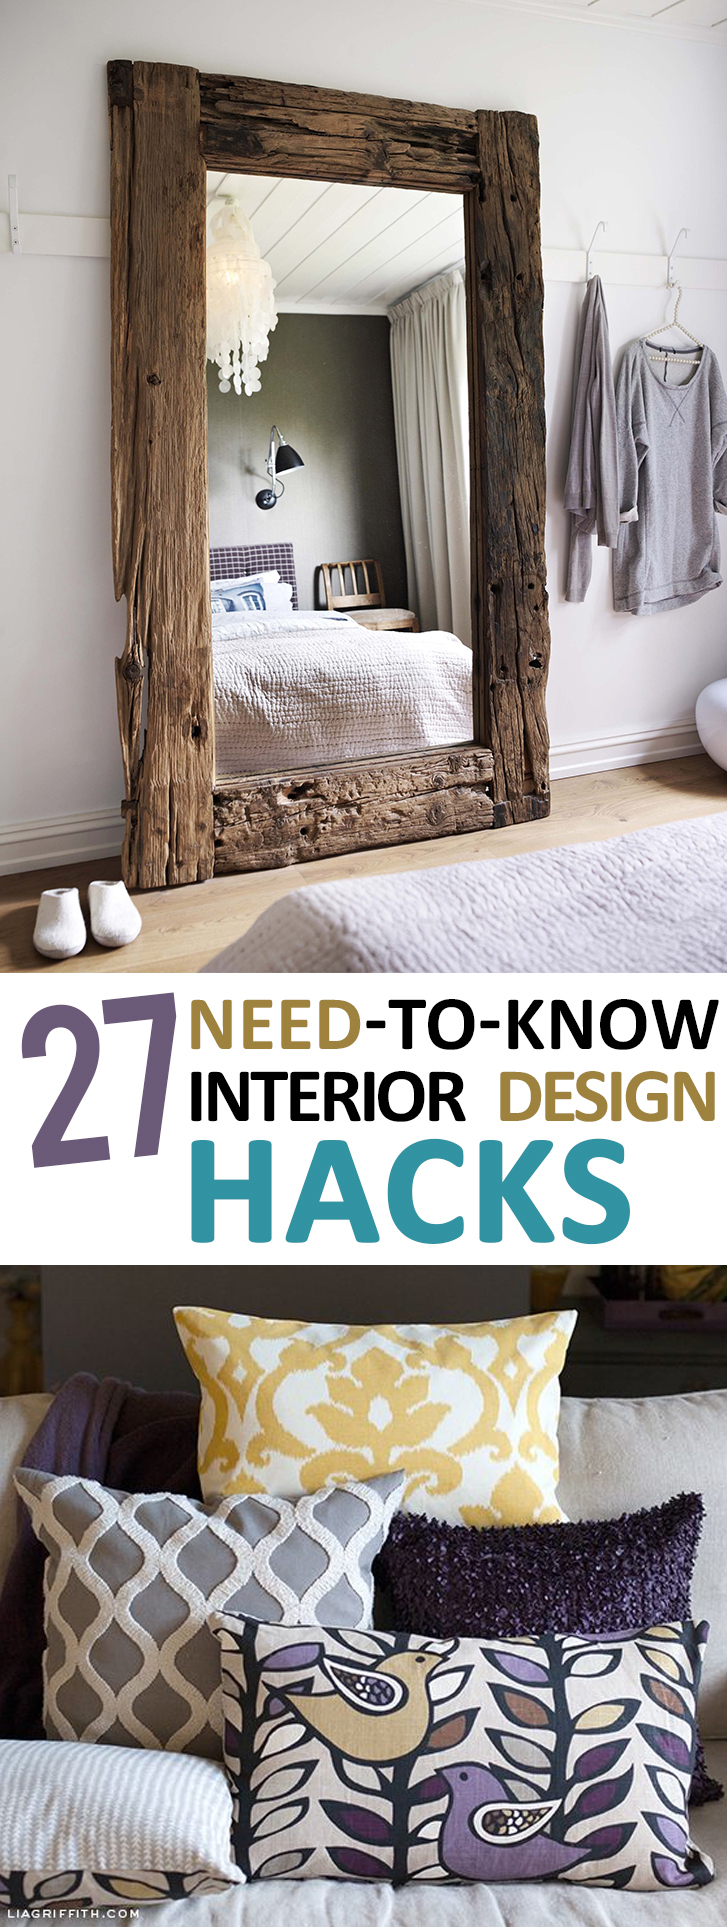 interior design interior design hacks home design home decor diy home decor